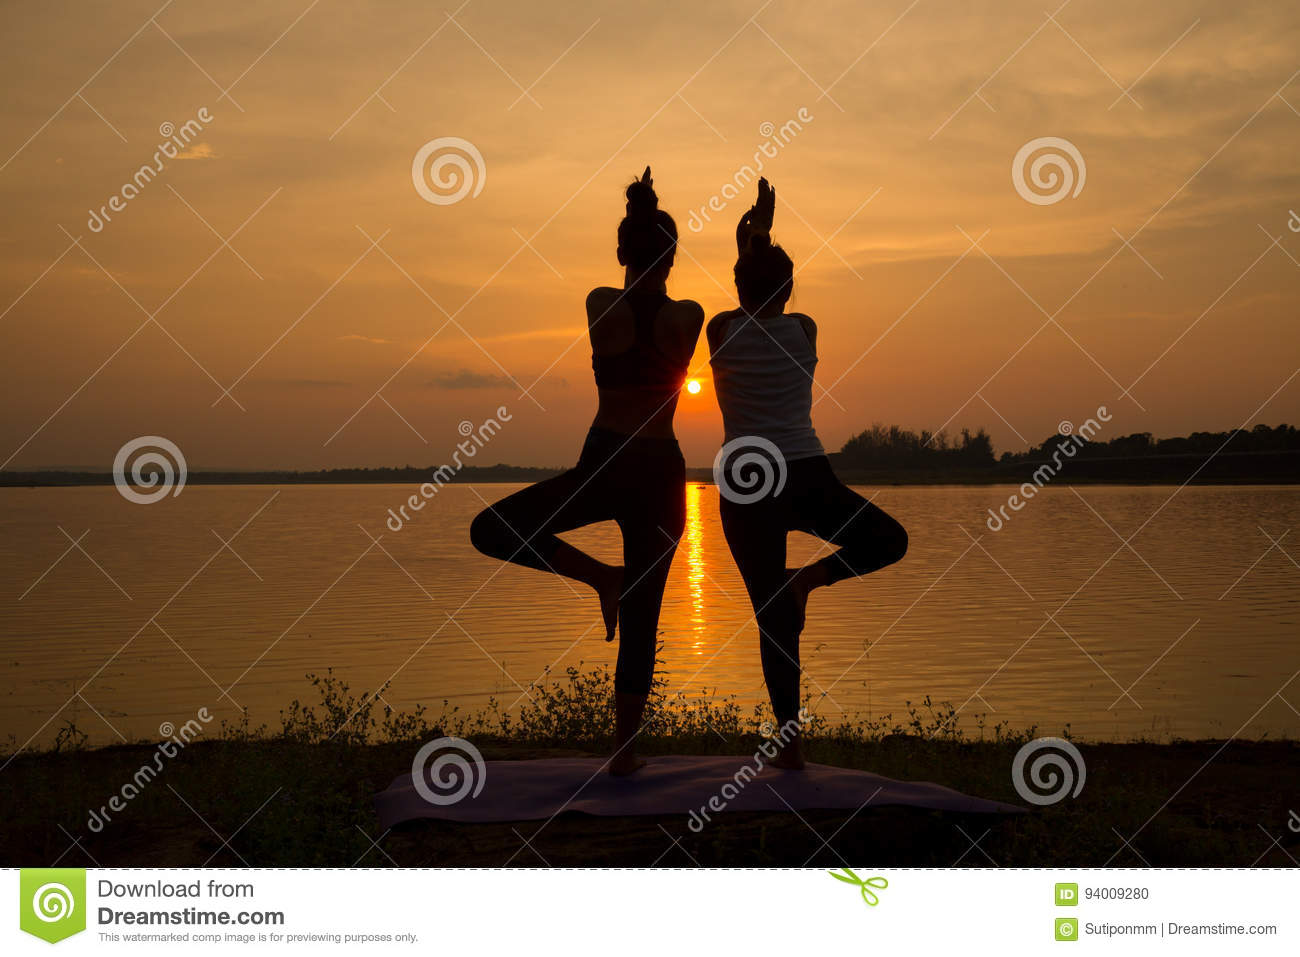 Download YOGA Silhouette Two Woman Practicing Yoga Poses On Sunset Rivers Stock Photo